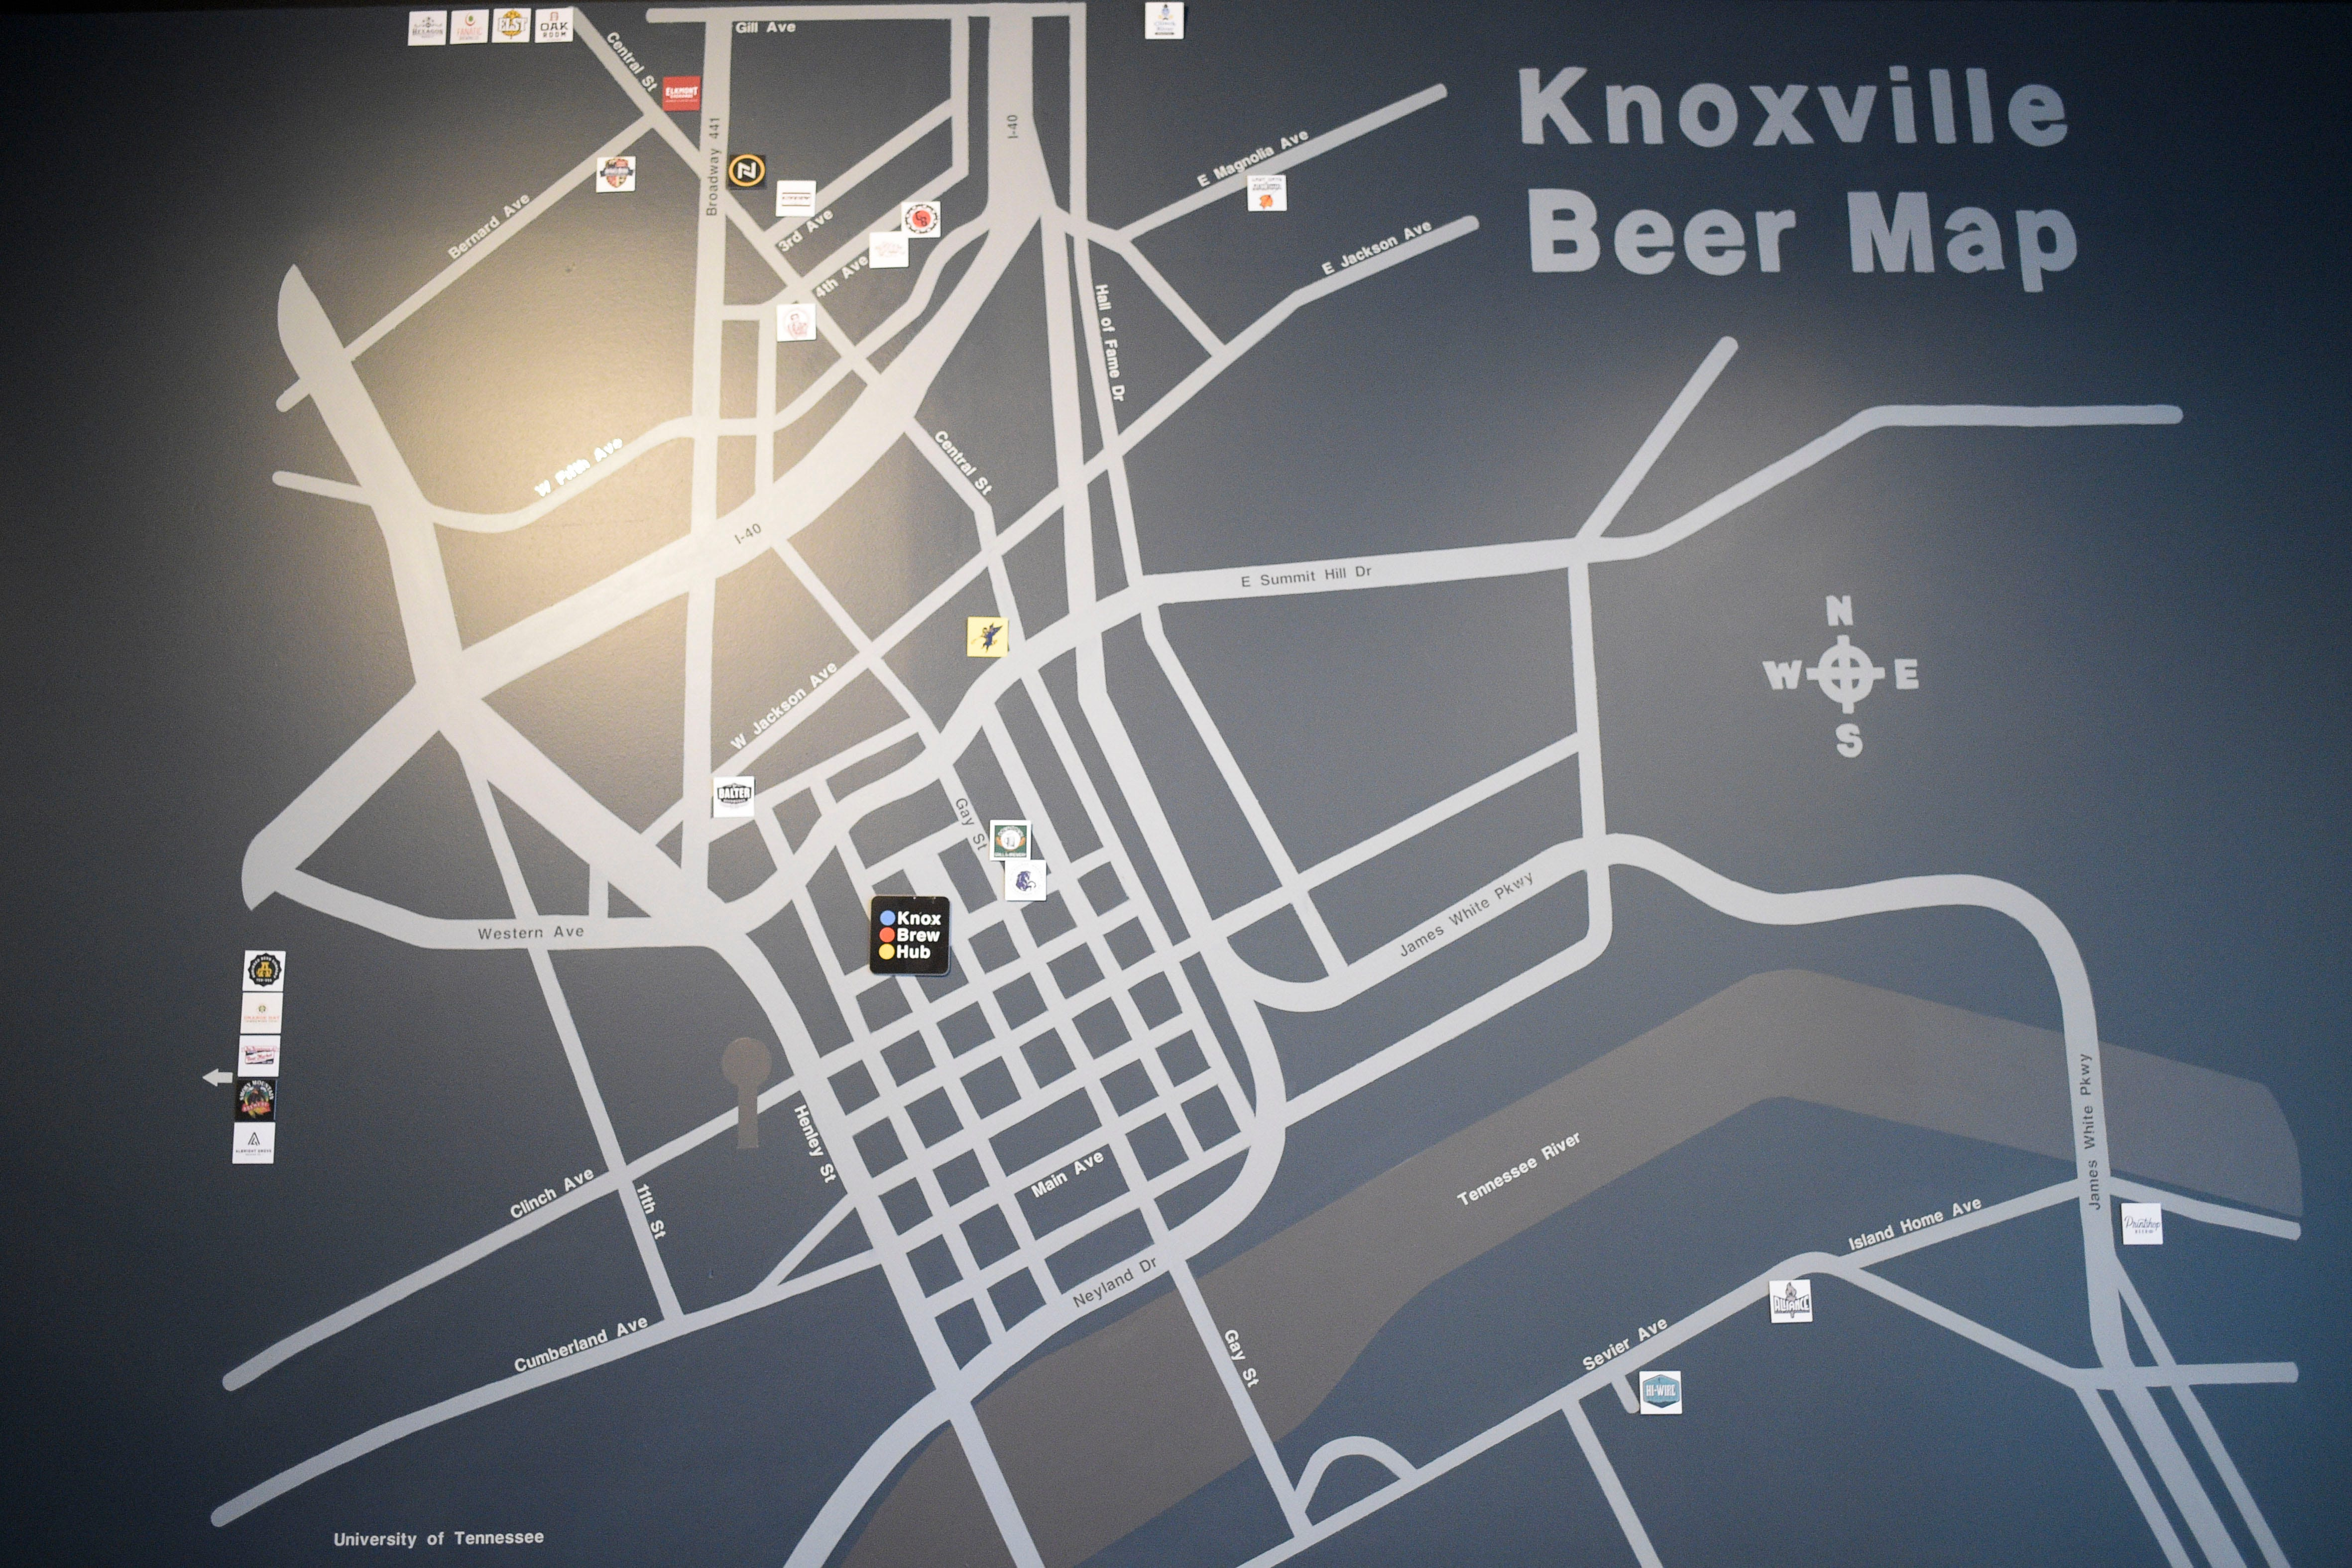 A painting of a Knoxville Beer Map on the wall at Knox Brew Hub in downtown Knoxville, Tenn. on Saturday, Feb. 13, 2021.